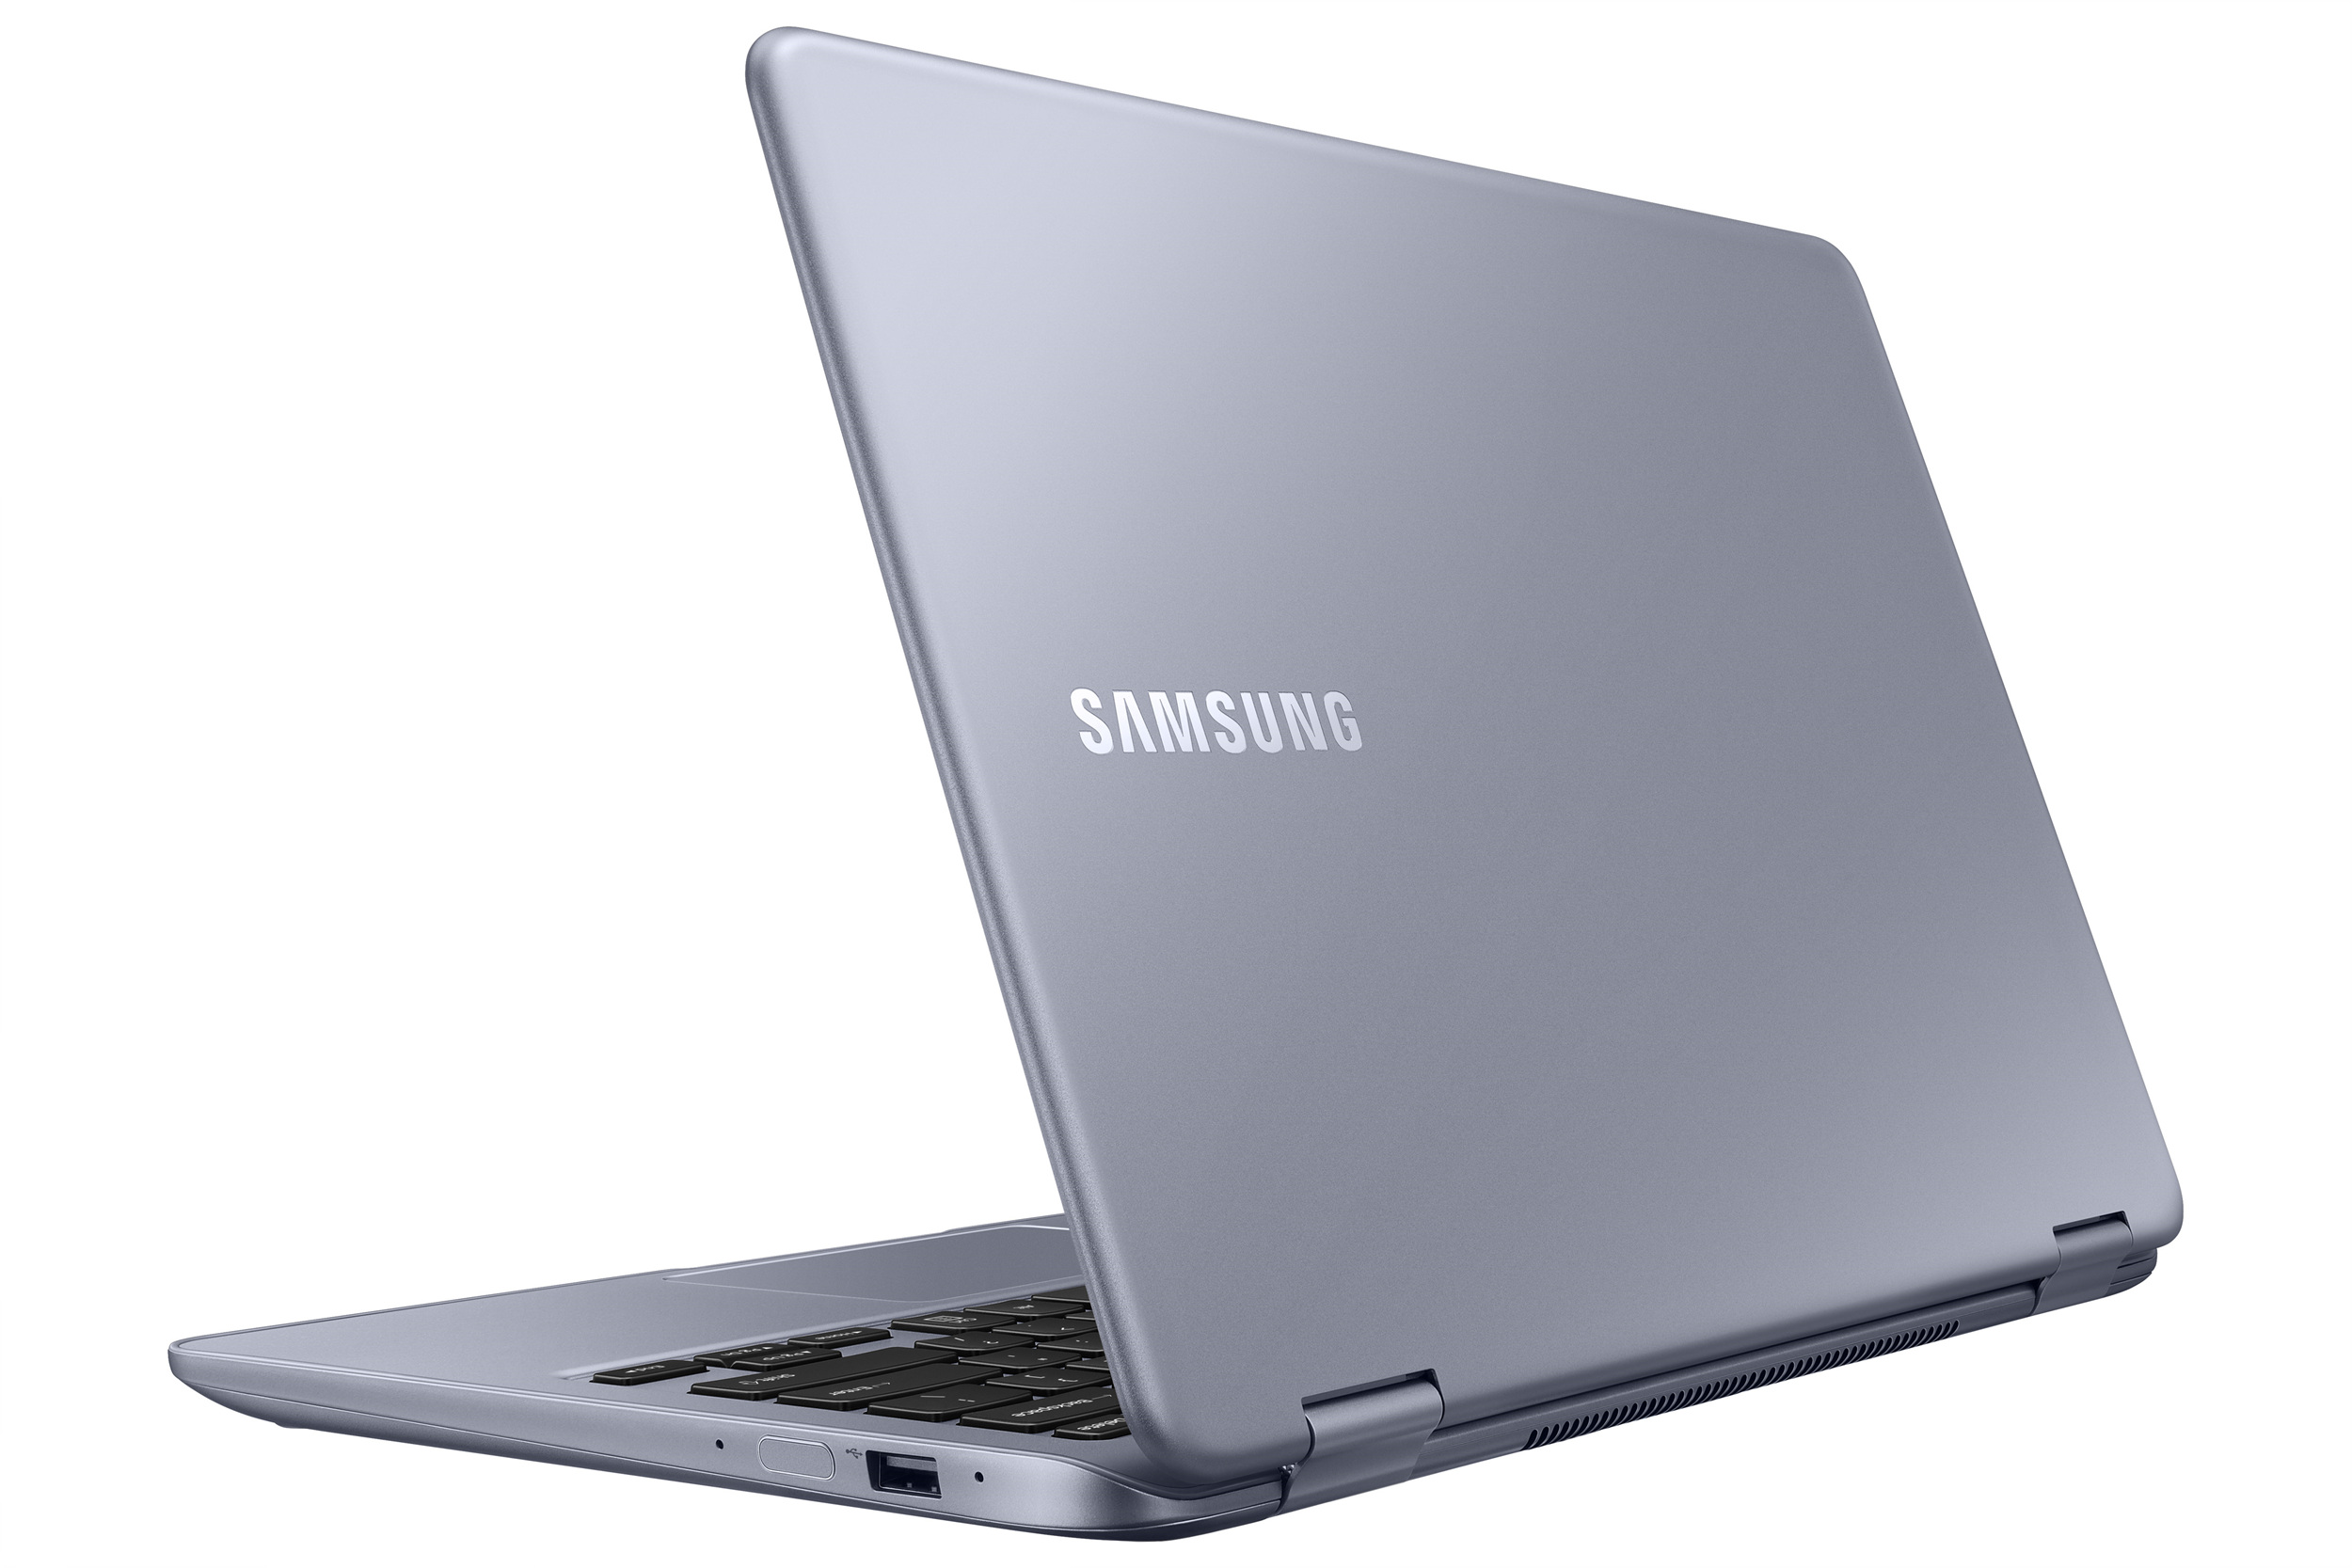 Samsung Notebook 9 Pen, Notebook 9 (2018) and Notebook 7 Spin (2018